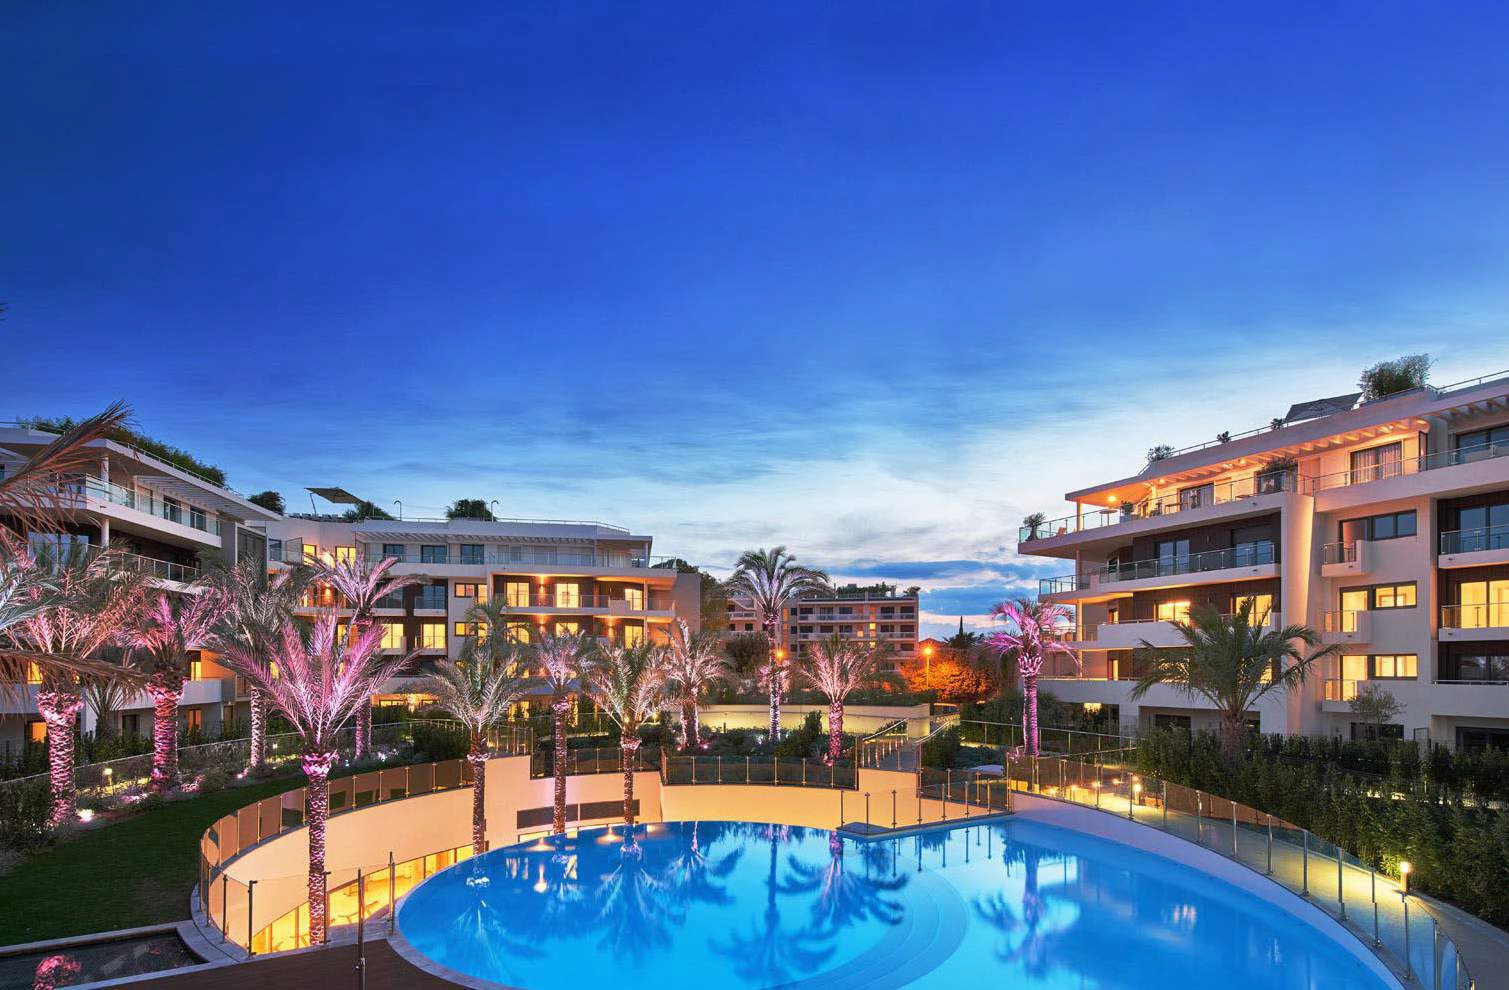 1 bedroom apartment in new luxury residence - 5 minutes from the beach